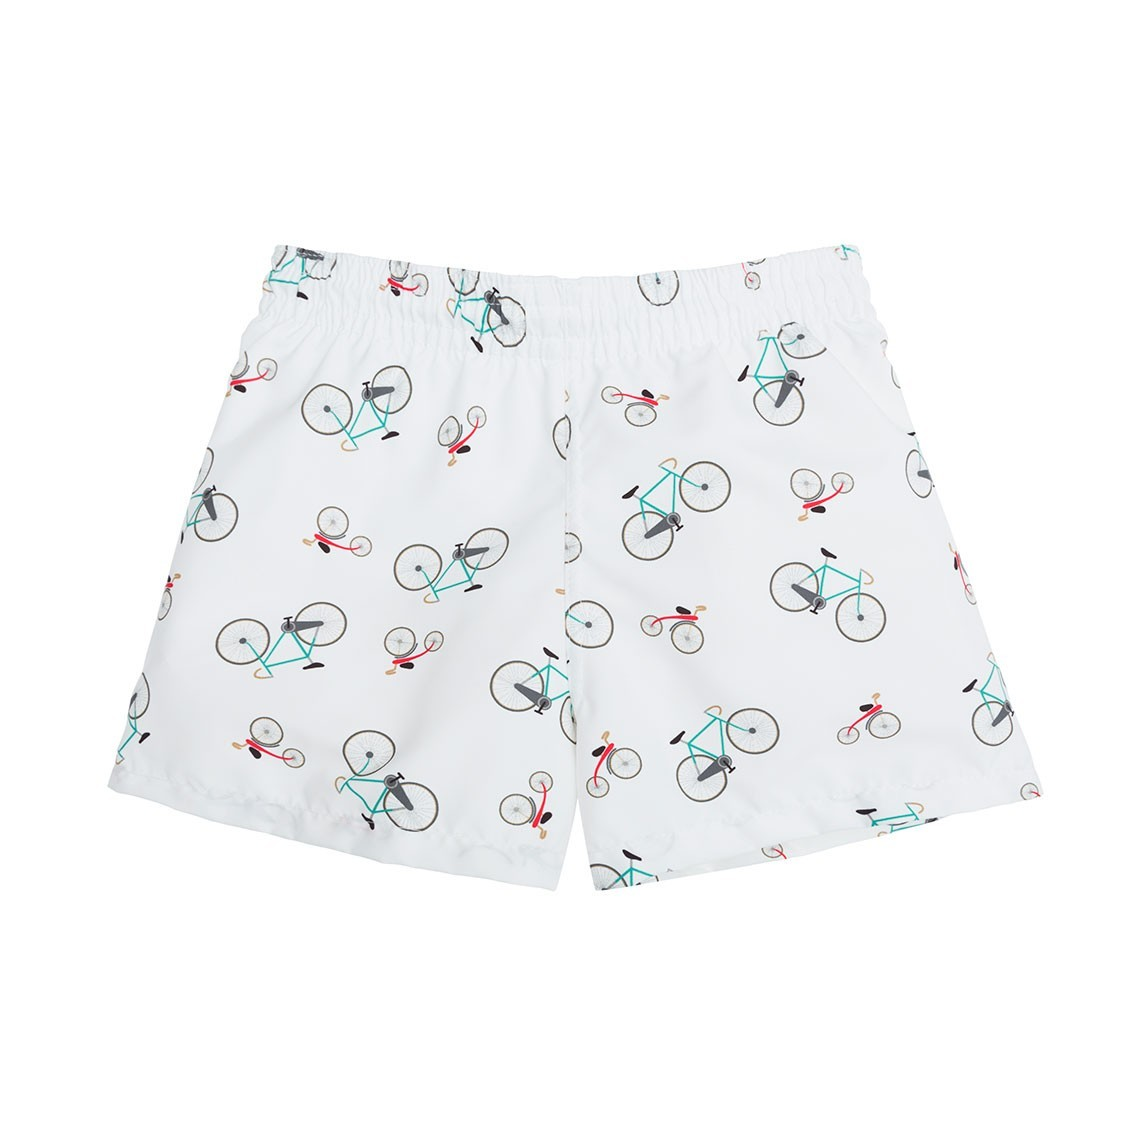 ba1a4bfc11 Boy Swim short White Bikes 2 to 4 years - Ocoly